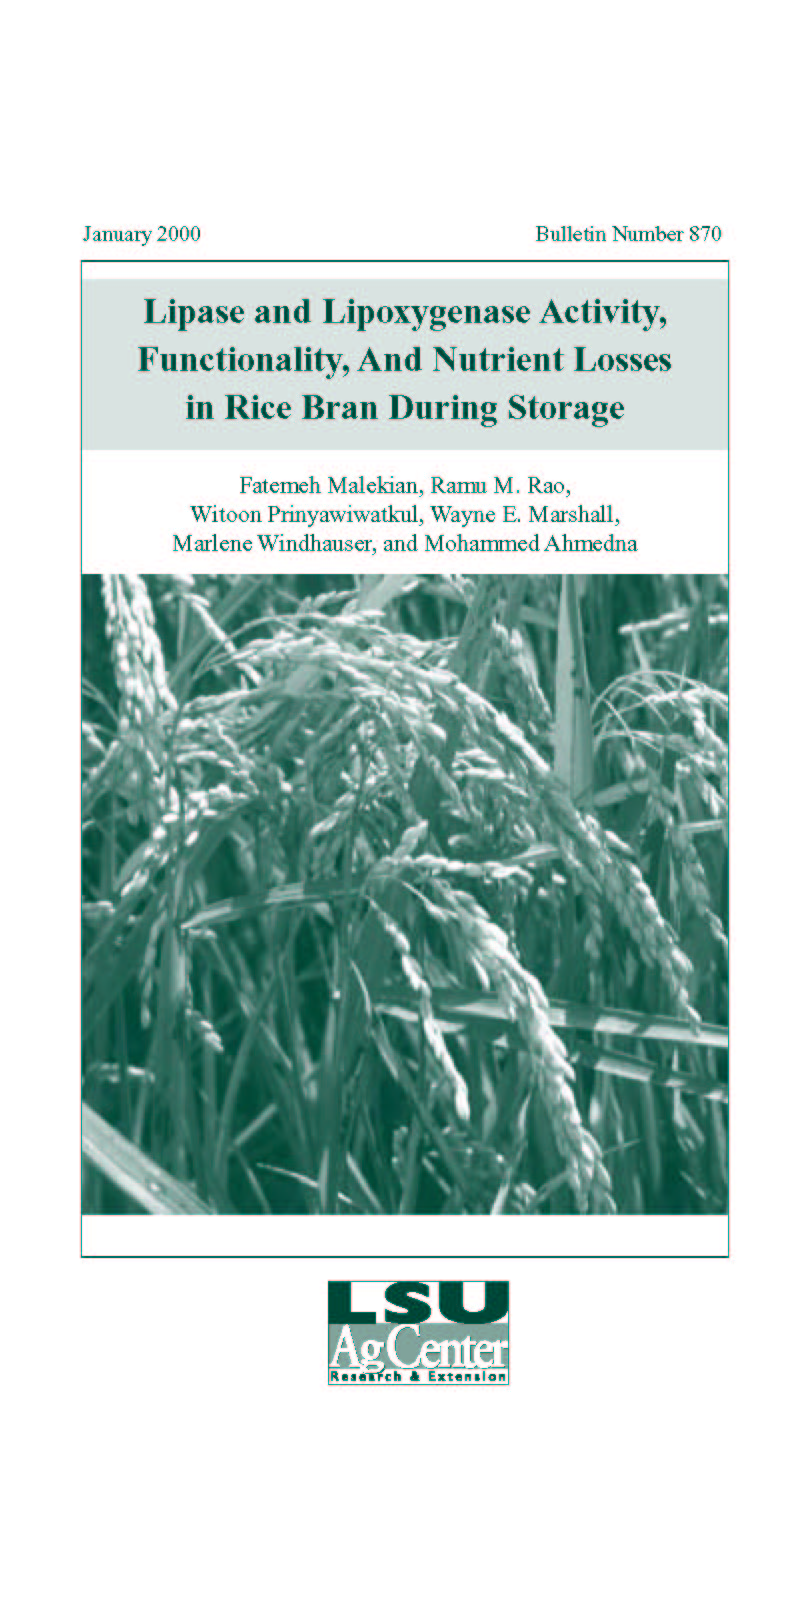 Lipase and Lipoxygenase Activity Functionality and Nutrient Losses in Rice Bran During Storage (1999)